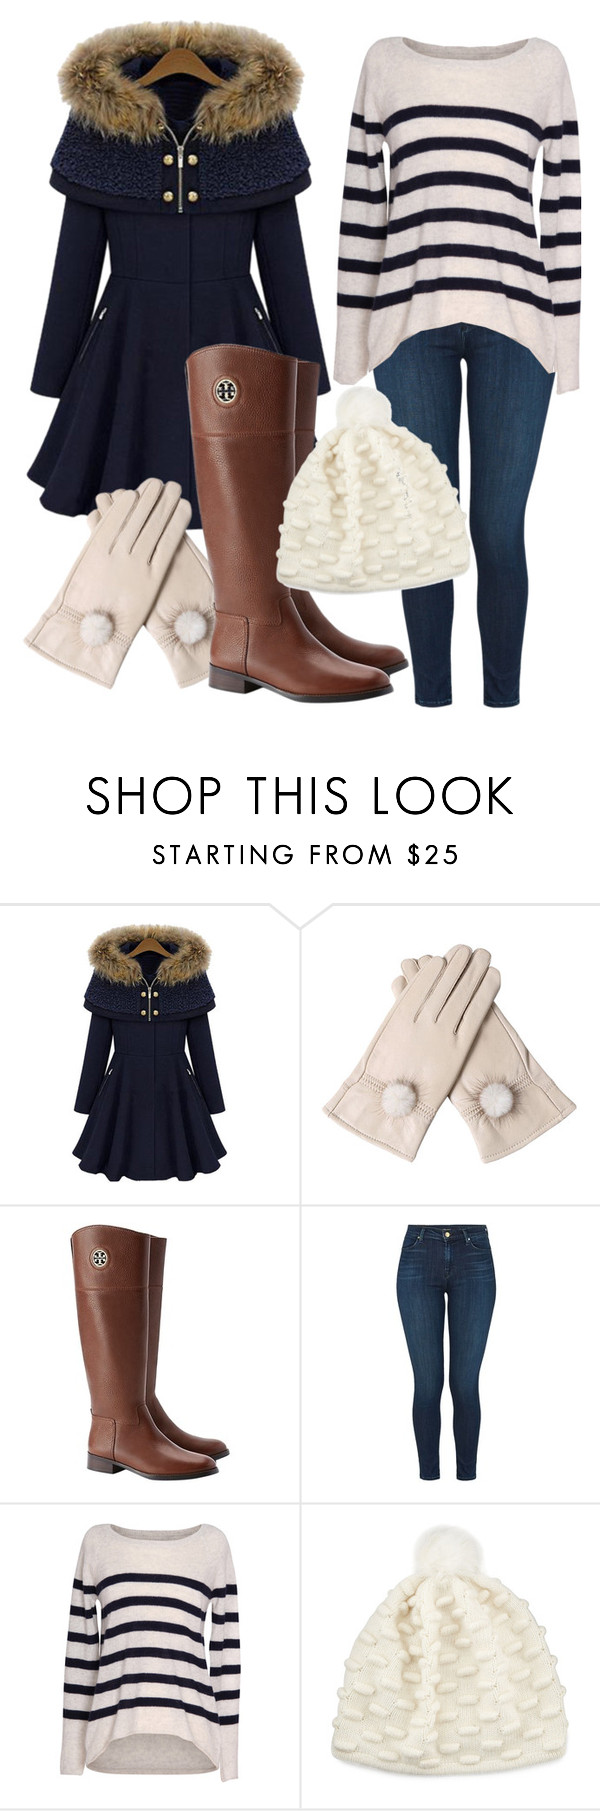 """""""Denim Winter"""" by songbird1413 on Polyvore featuring Tory Burch, J Brand, Velvet by Graham & Spencer and Portolano"""